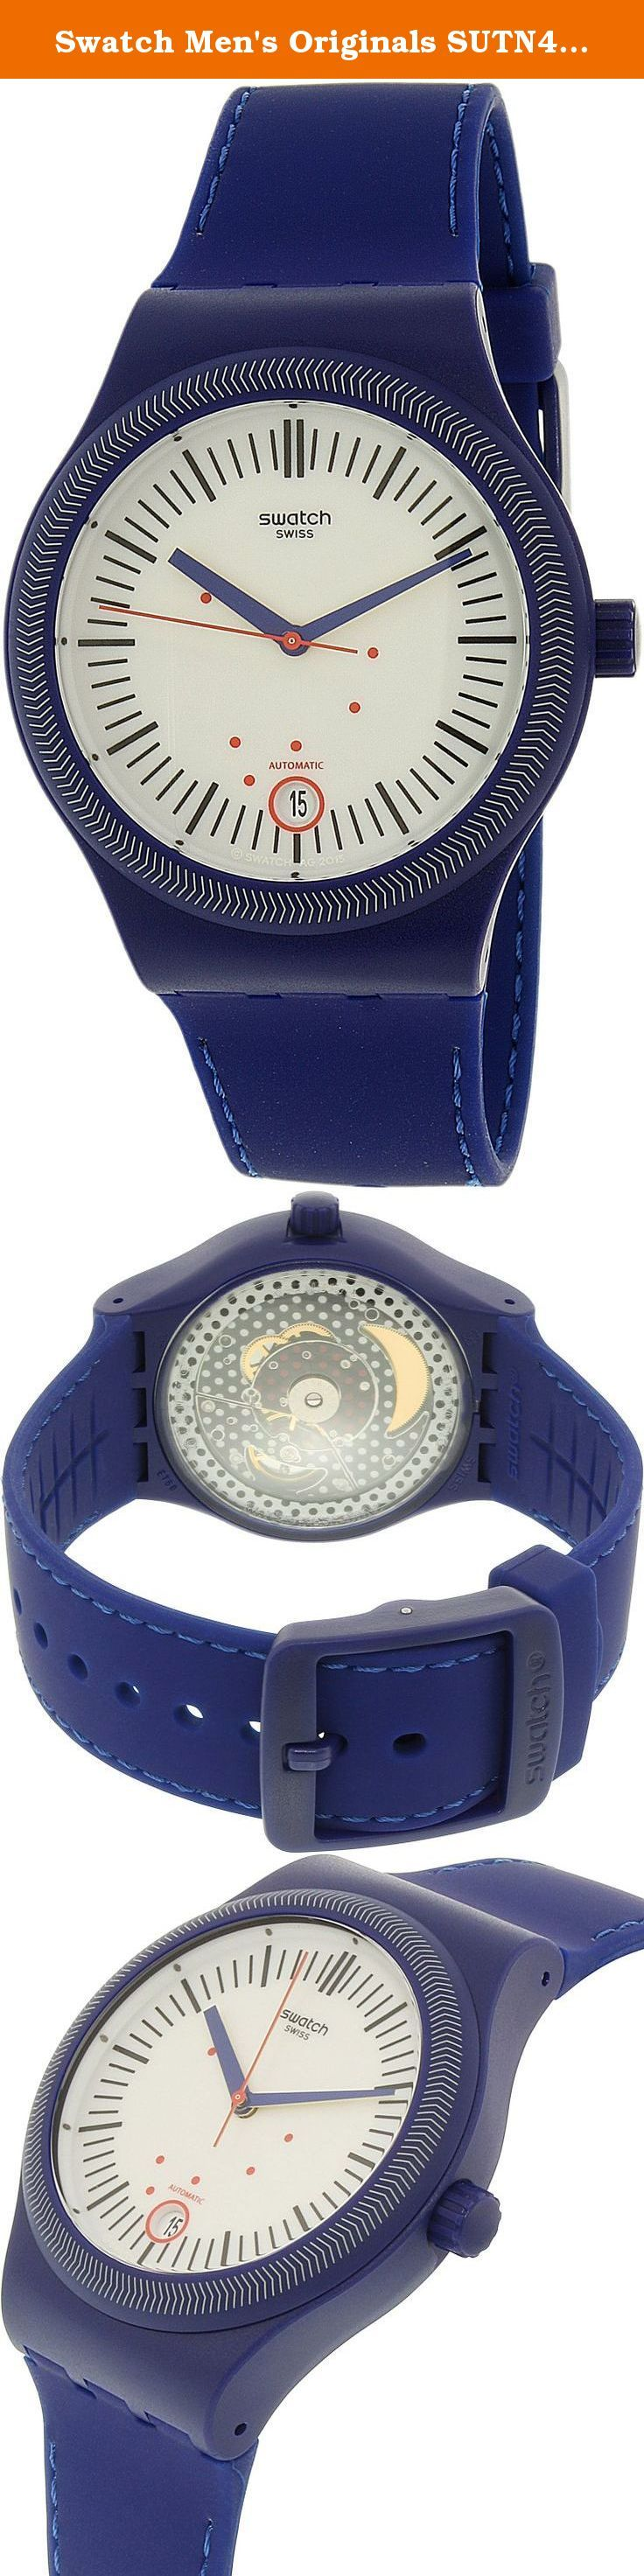 Swatch Men's Originals SUTN401 Blue Silicone Automatic Watch. Who says casual and classy dont mesh Theres always a way to make it work Laid-back doesnt have to mean boring or drab and this Swatch Originals watch is proof for those who doubt it Its the perfect in-between a duo of dapper and down-to-earth It features a 41MM plastic case that makes for a dapper appearance right off the bat and creates a subtle contrast against the watchs white dial thats perfectly pleasing to the eye The…